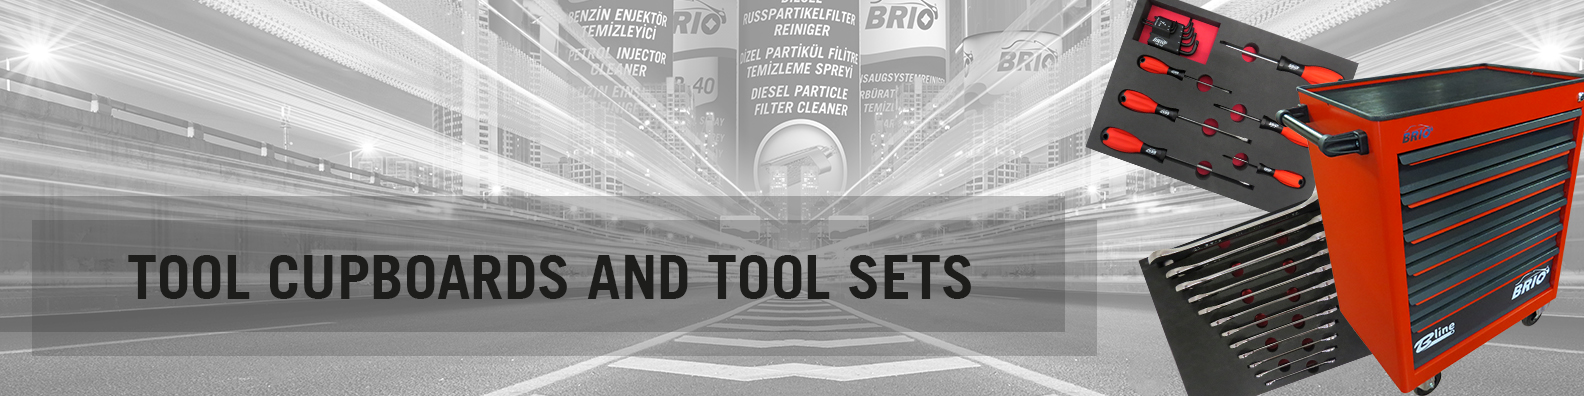 BRIO Europe Tool Cupboards and Tool Sets